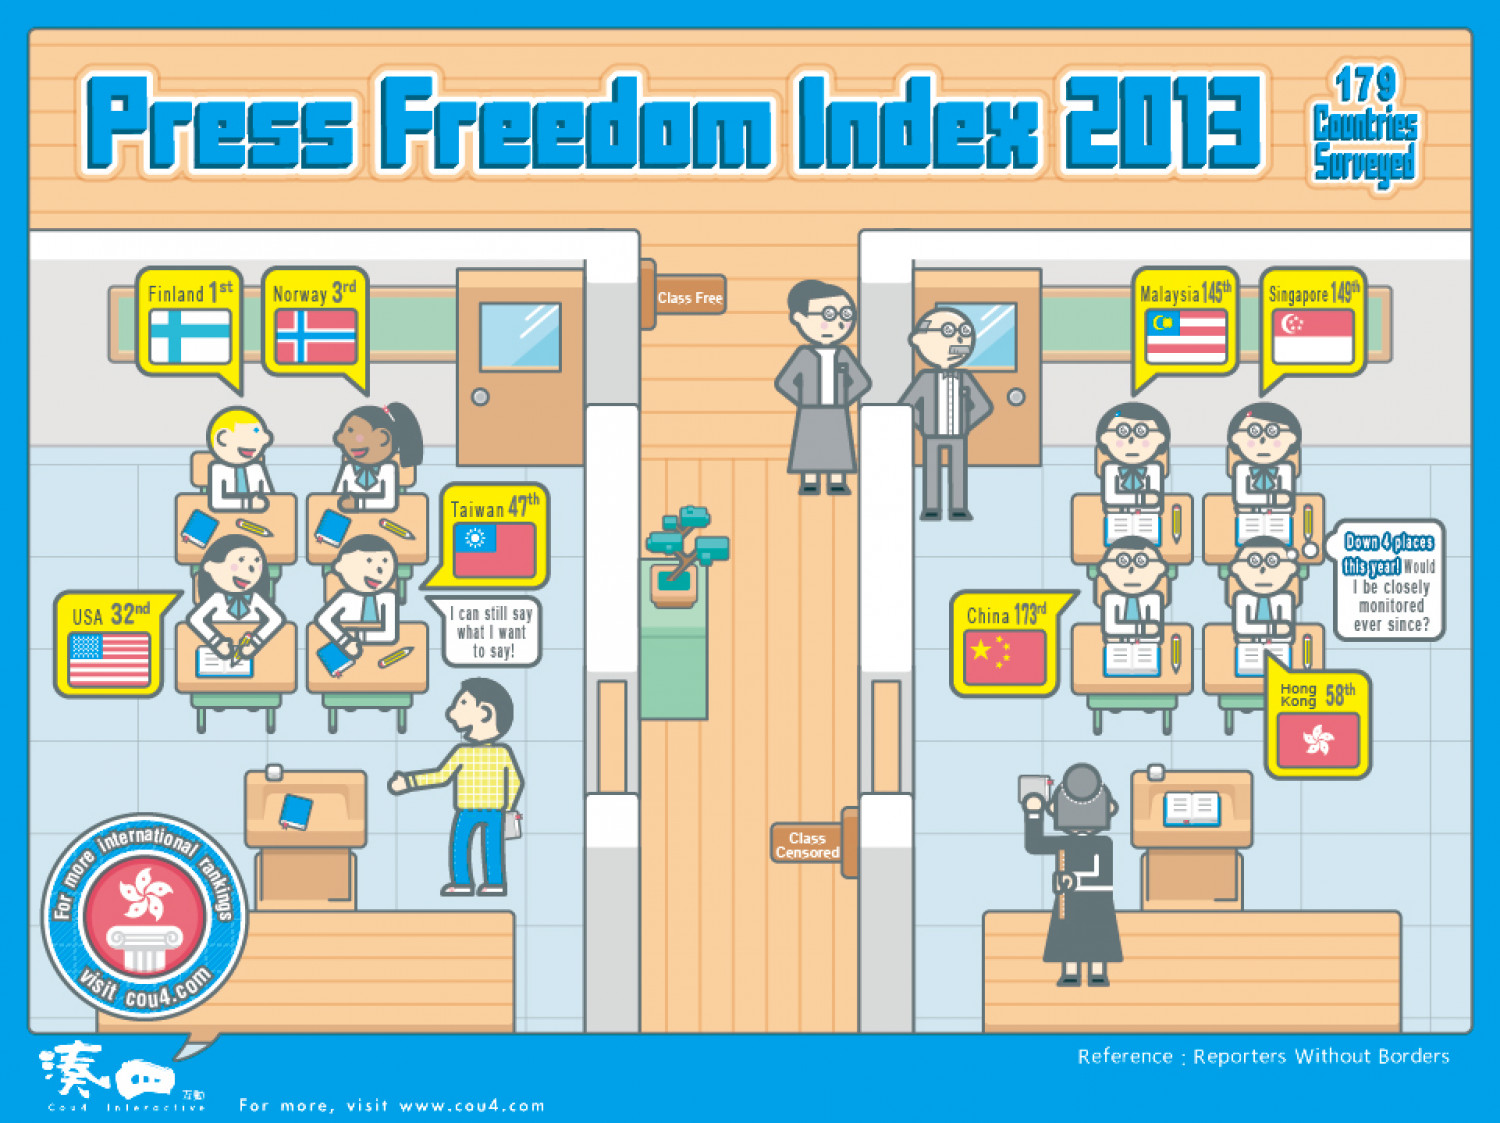 Press Freedom Index 2013 Infographic